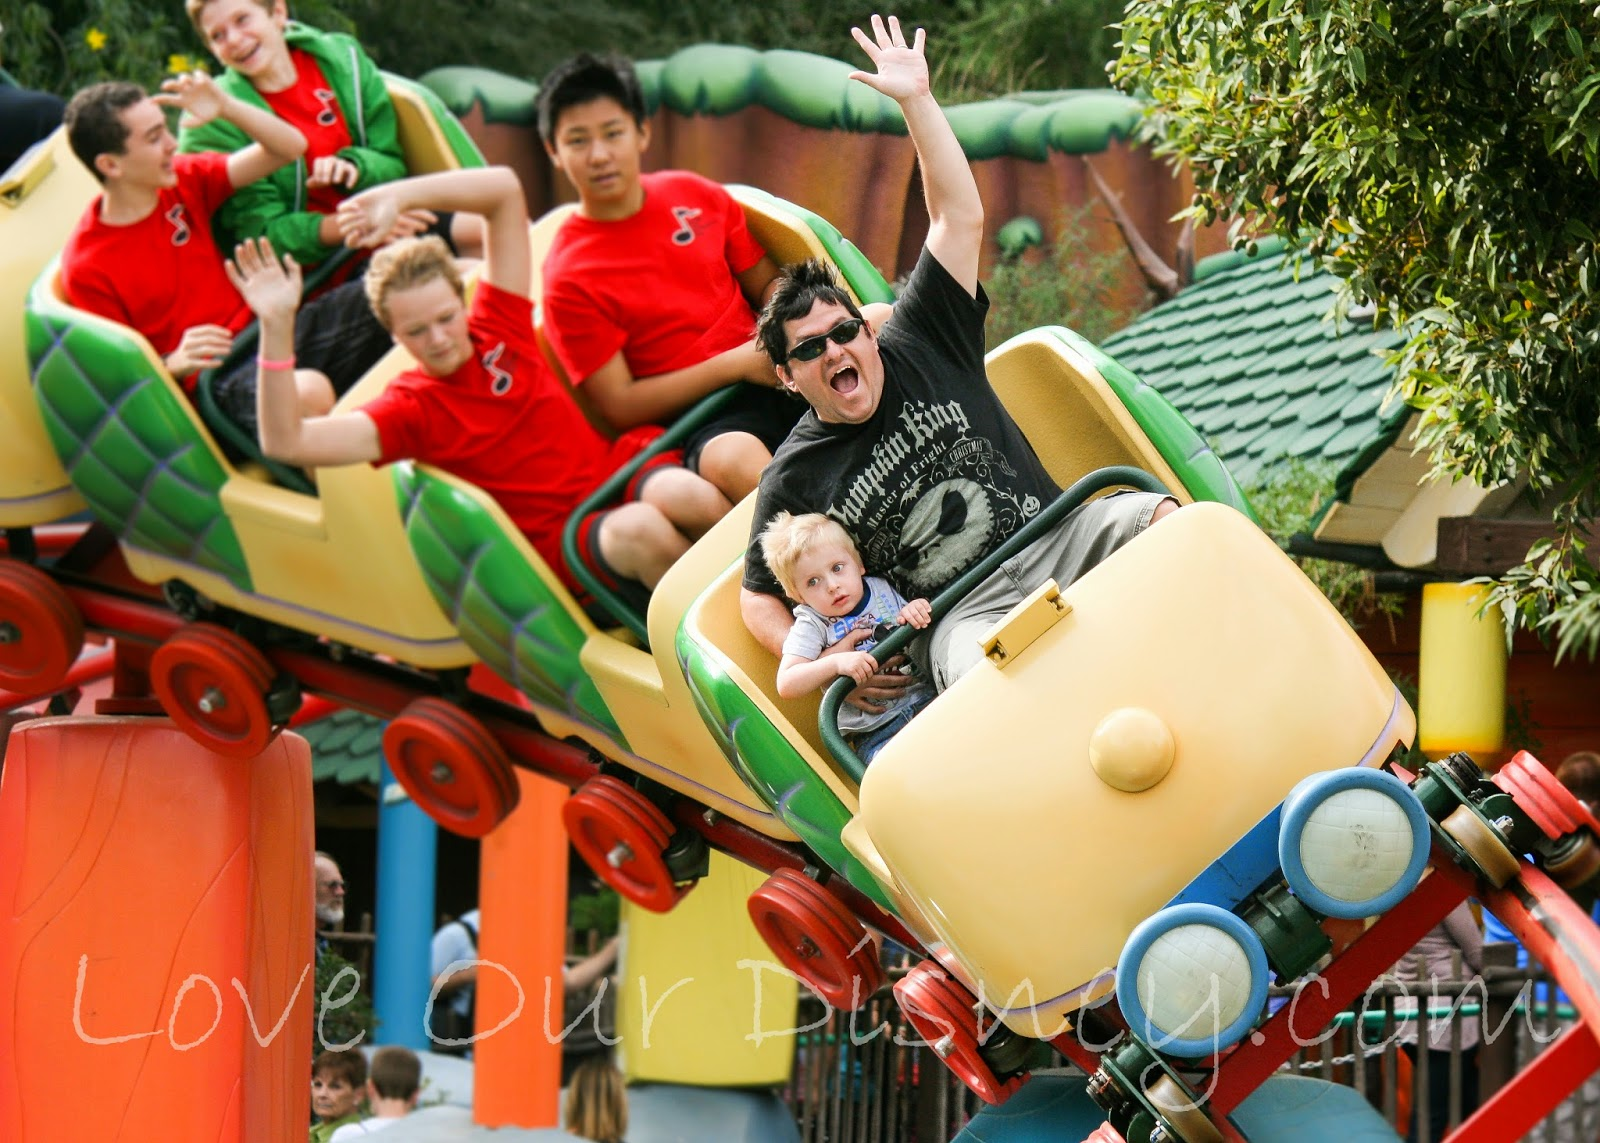 Is there anything at Disneyland Resort that is free/included besides rides? LoveOurDisney.com has the answer